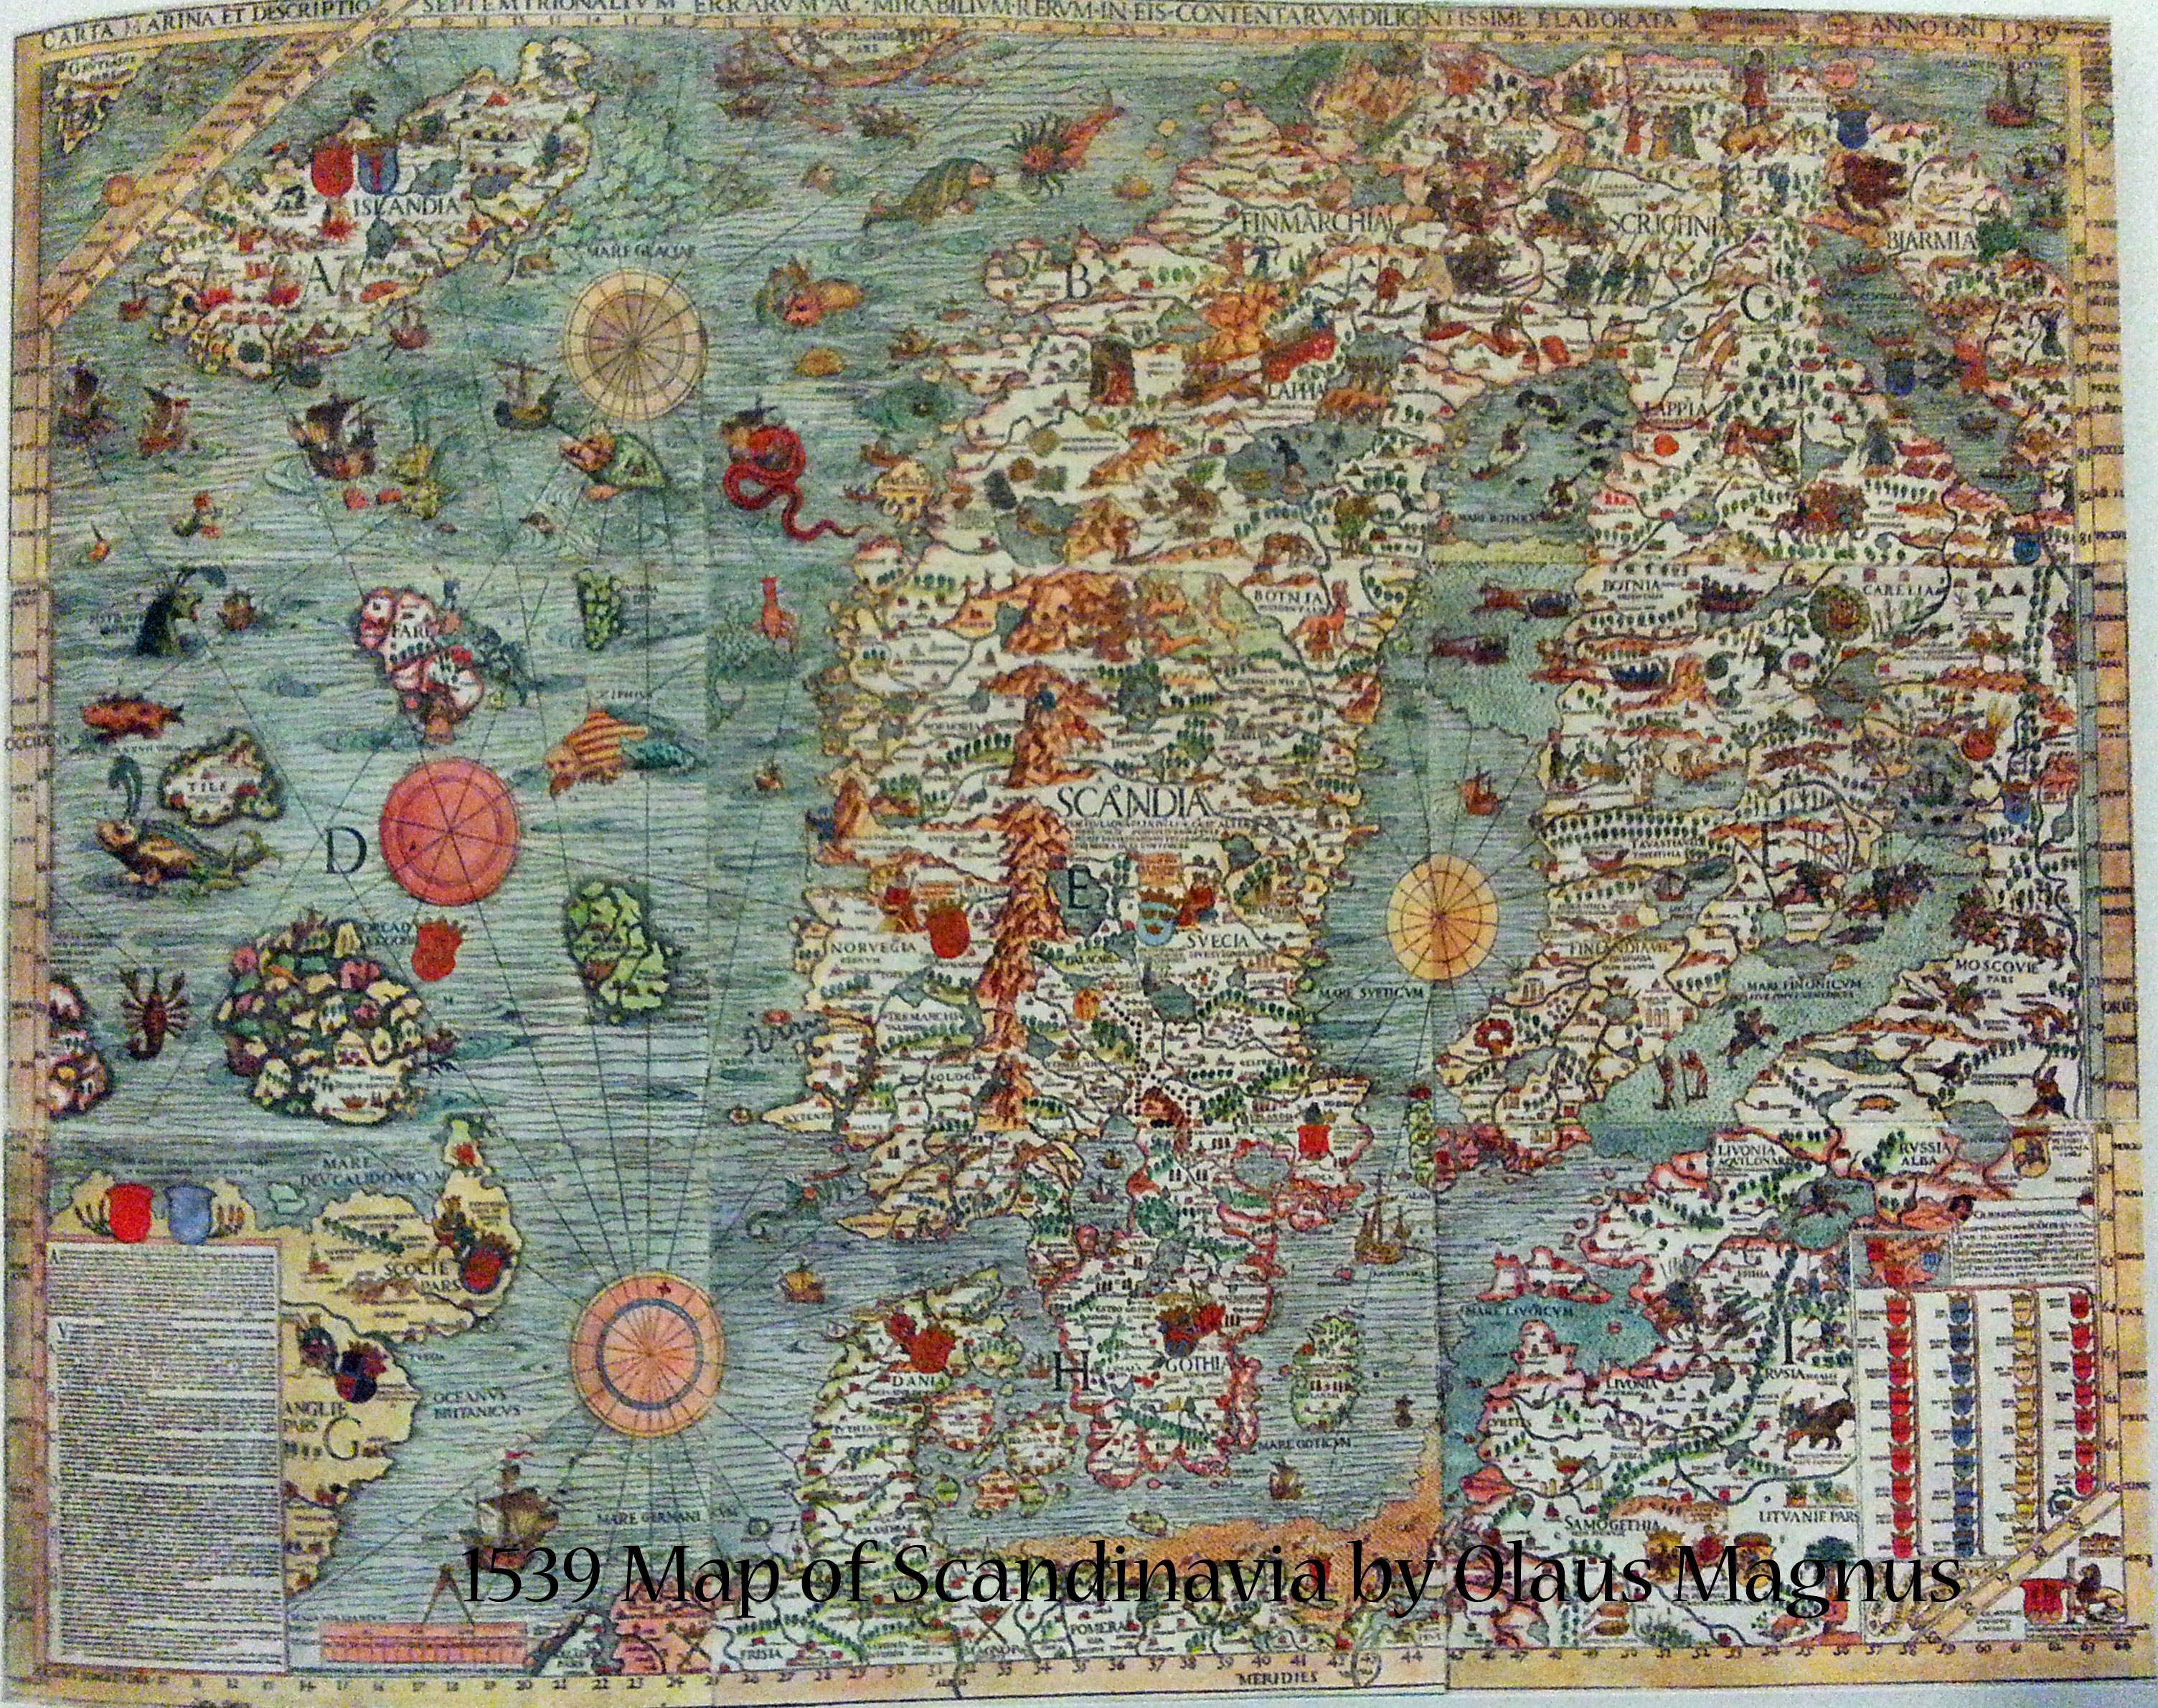 1539 Map of Scandinavia by Olaus Magnus | Book Addicts